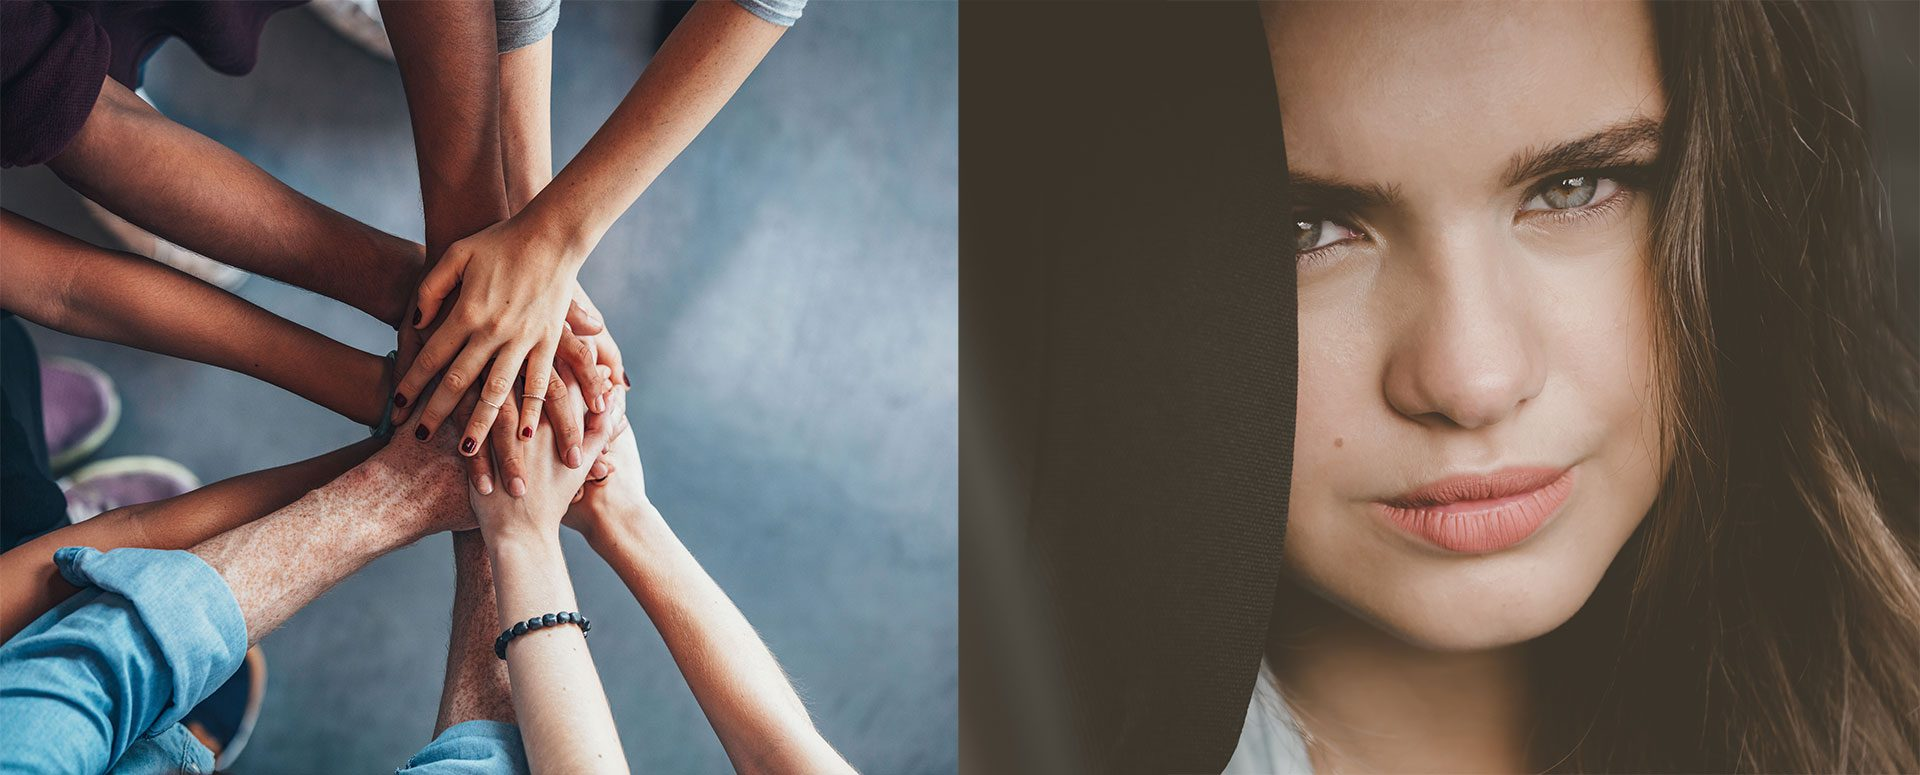 FamilySmart® homepage banner with young person and hands joined together